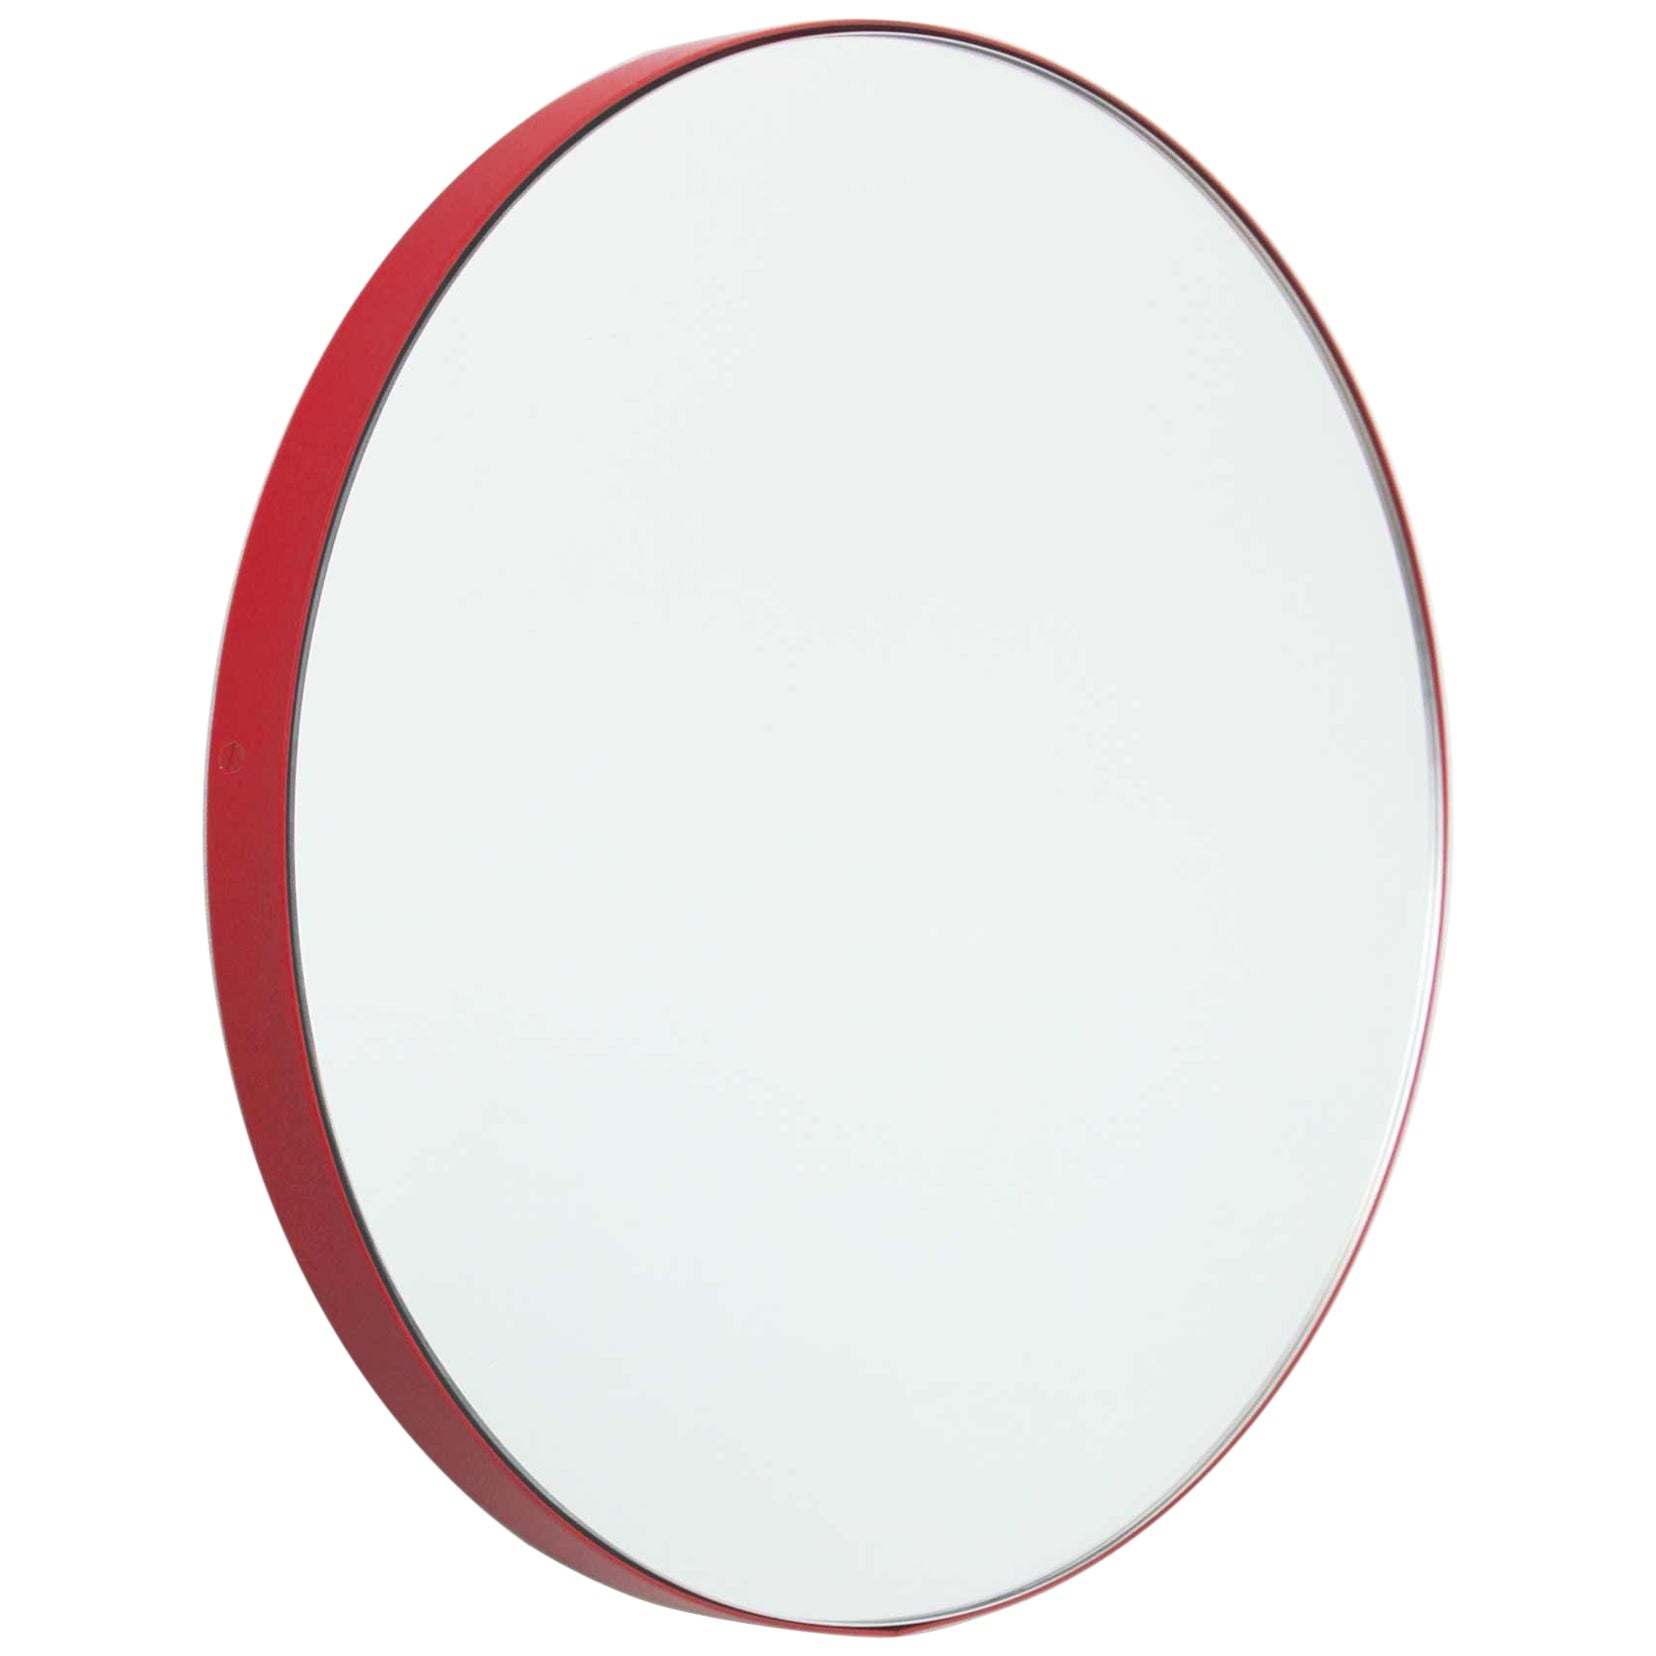 Orbis™ Round Contemporary Bespoke Mirror with Red Frame - Small